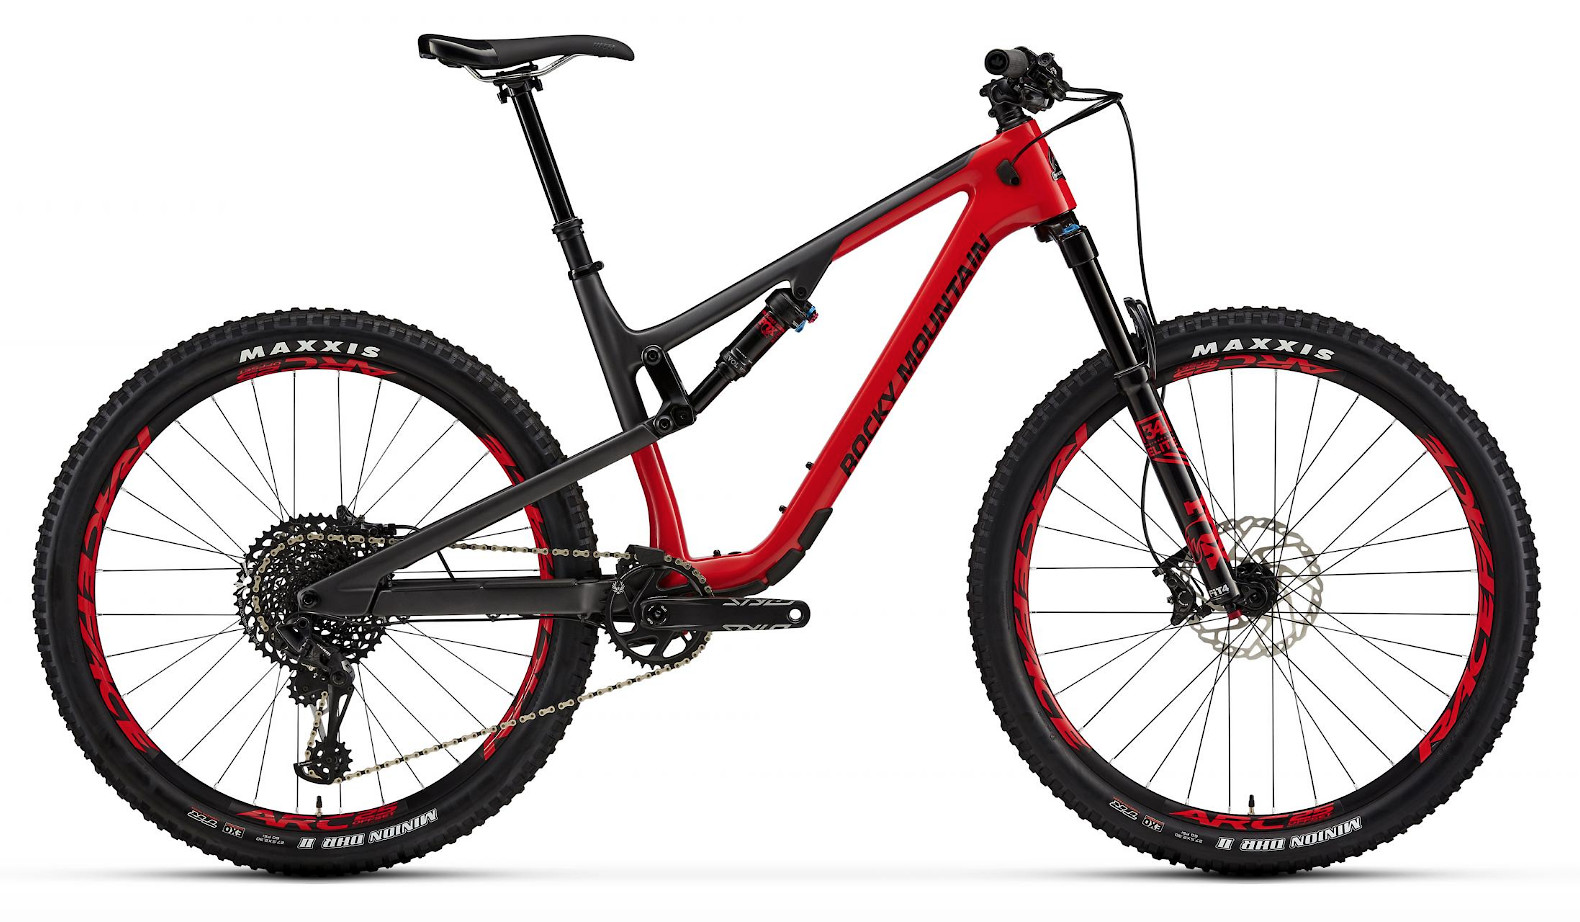 2019 Rocky Mountain Thunderbolt Carbon 70 - Red and gray